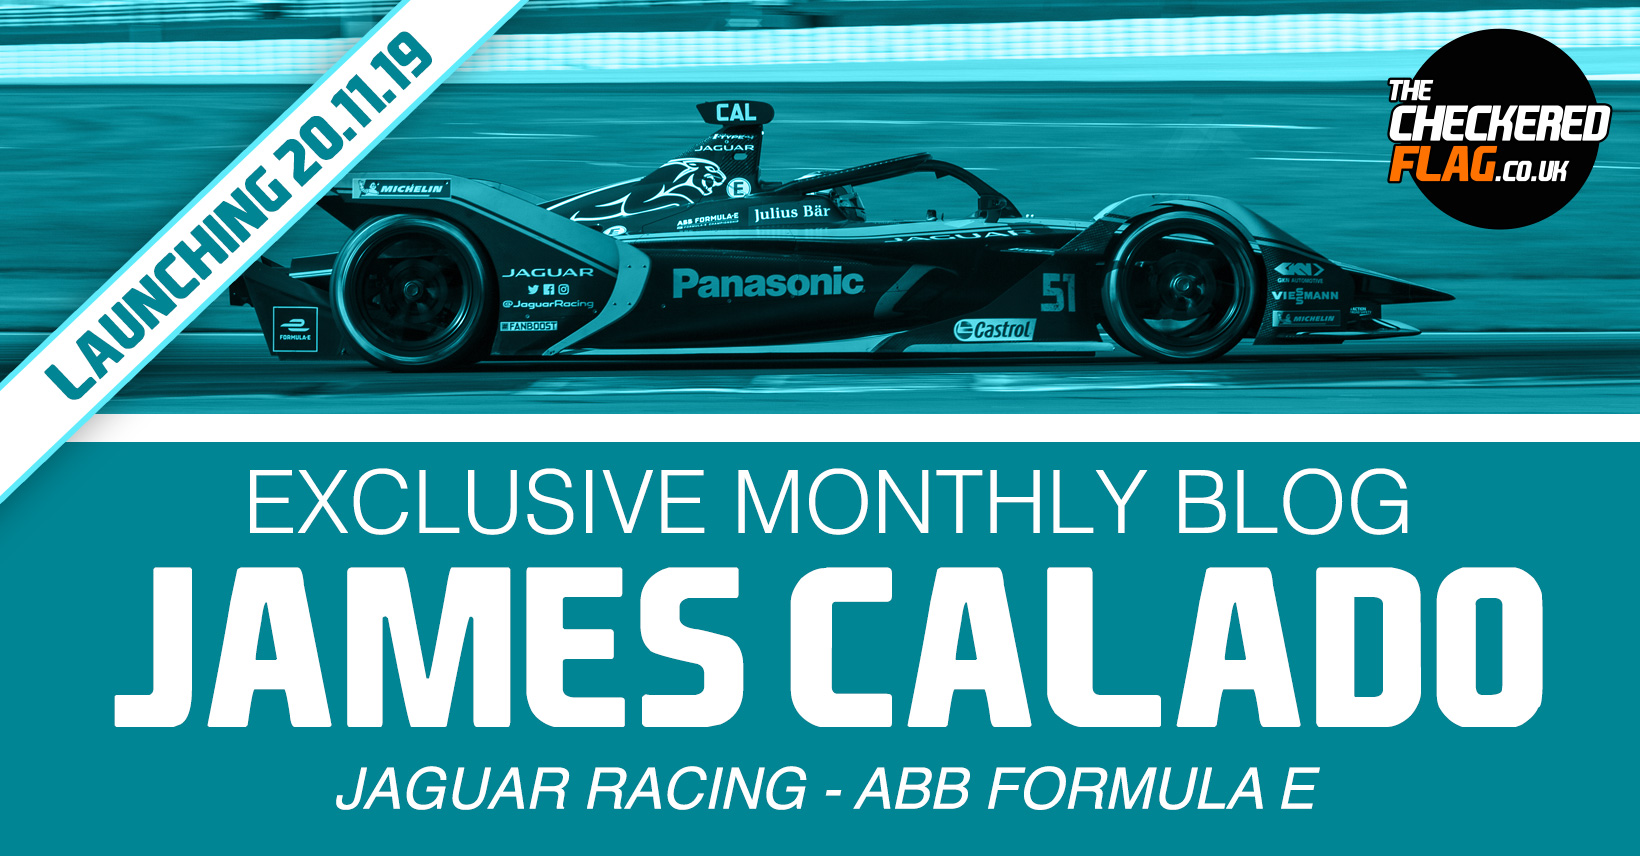 James Calado Formula E Blog - Jaguar Racing